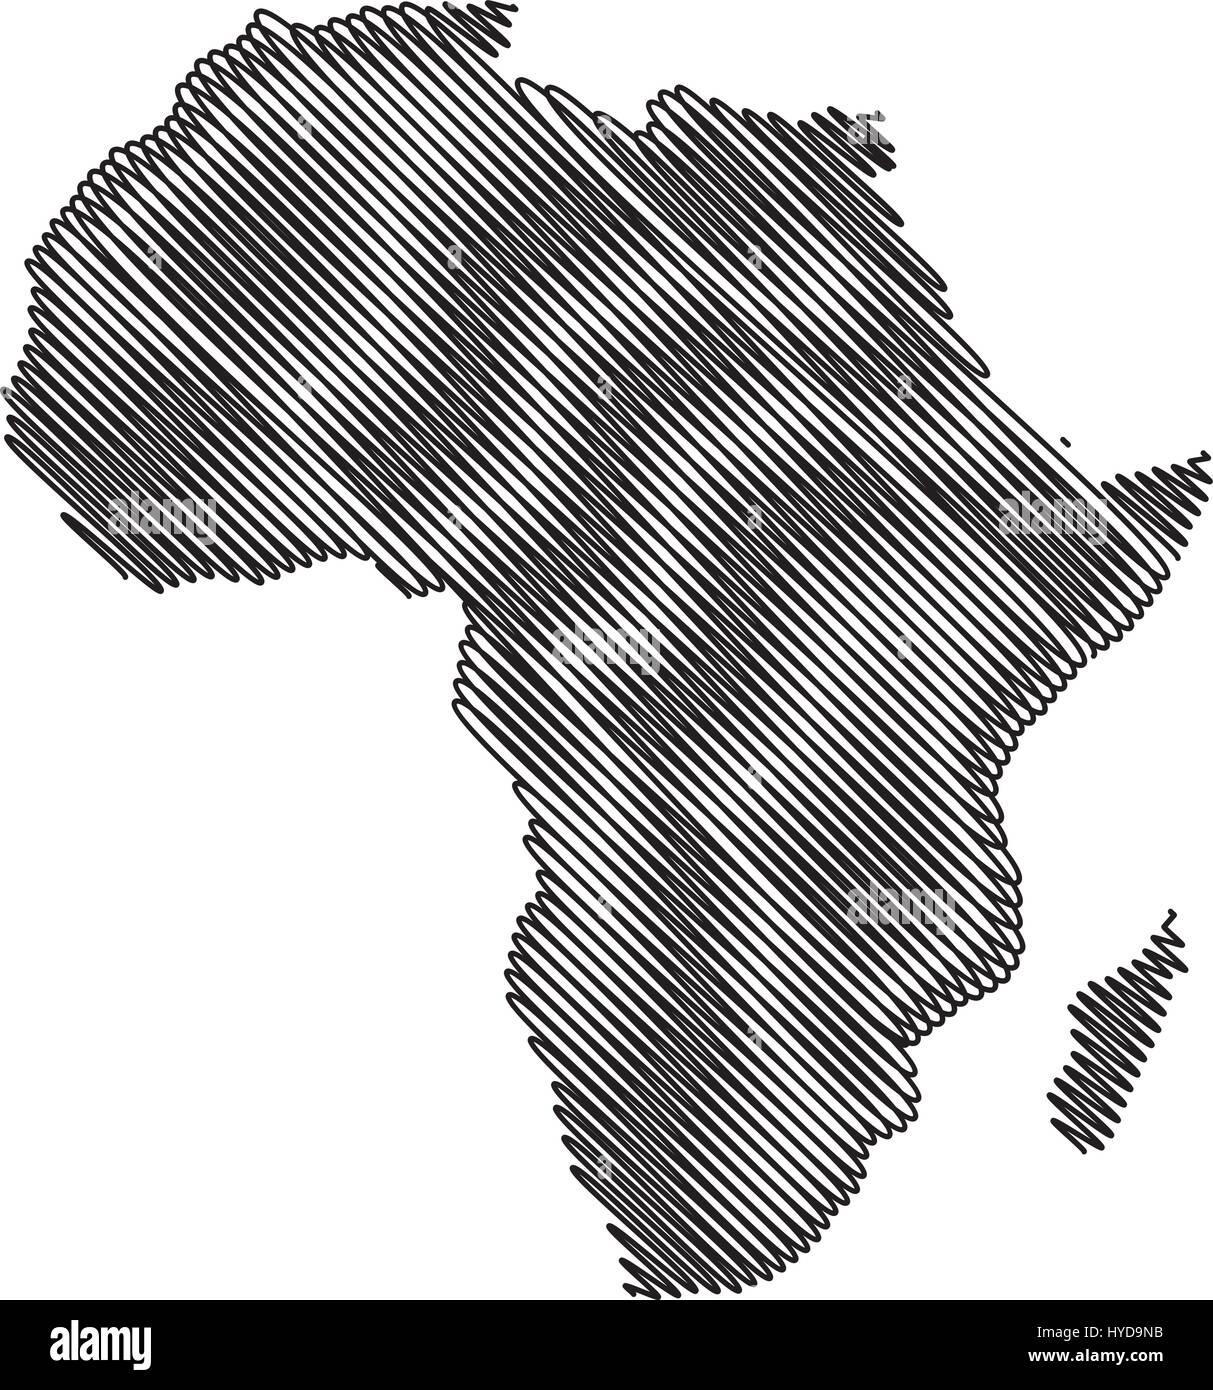 map of Africa vector illustration scribble sketch of Africa Stock